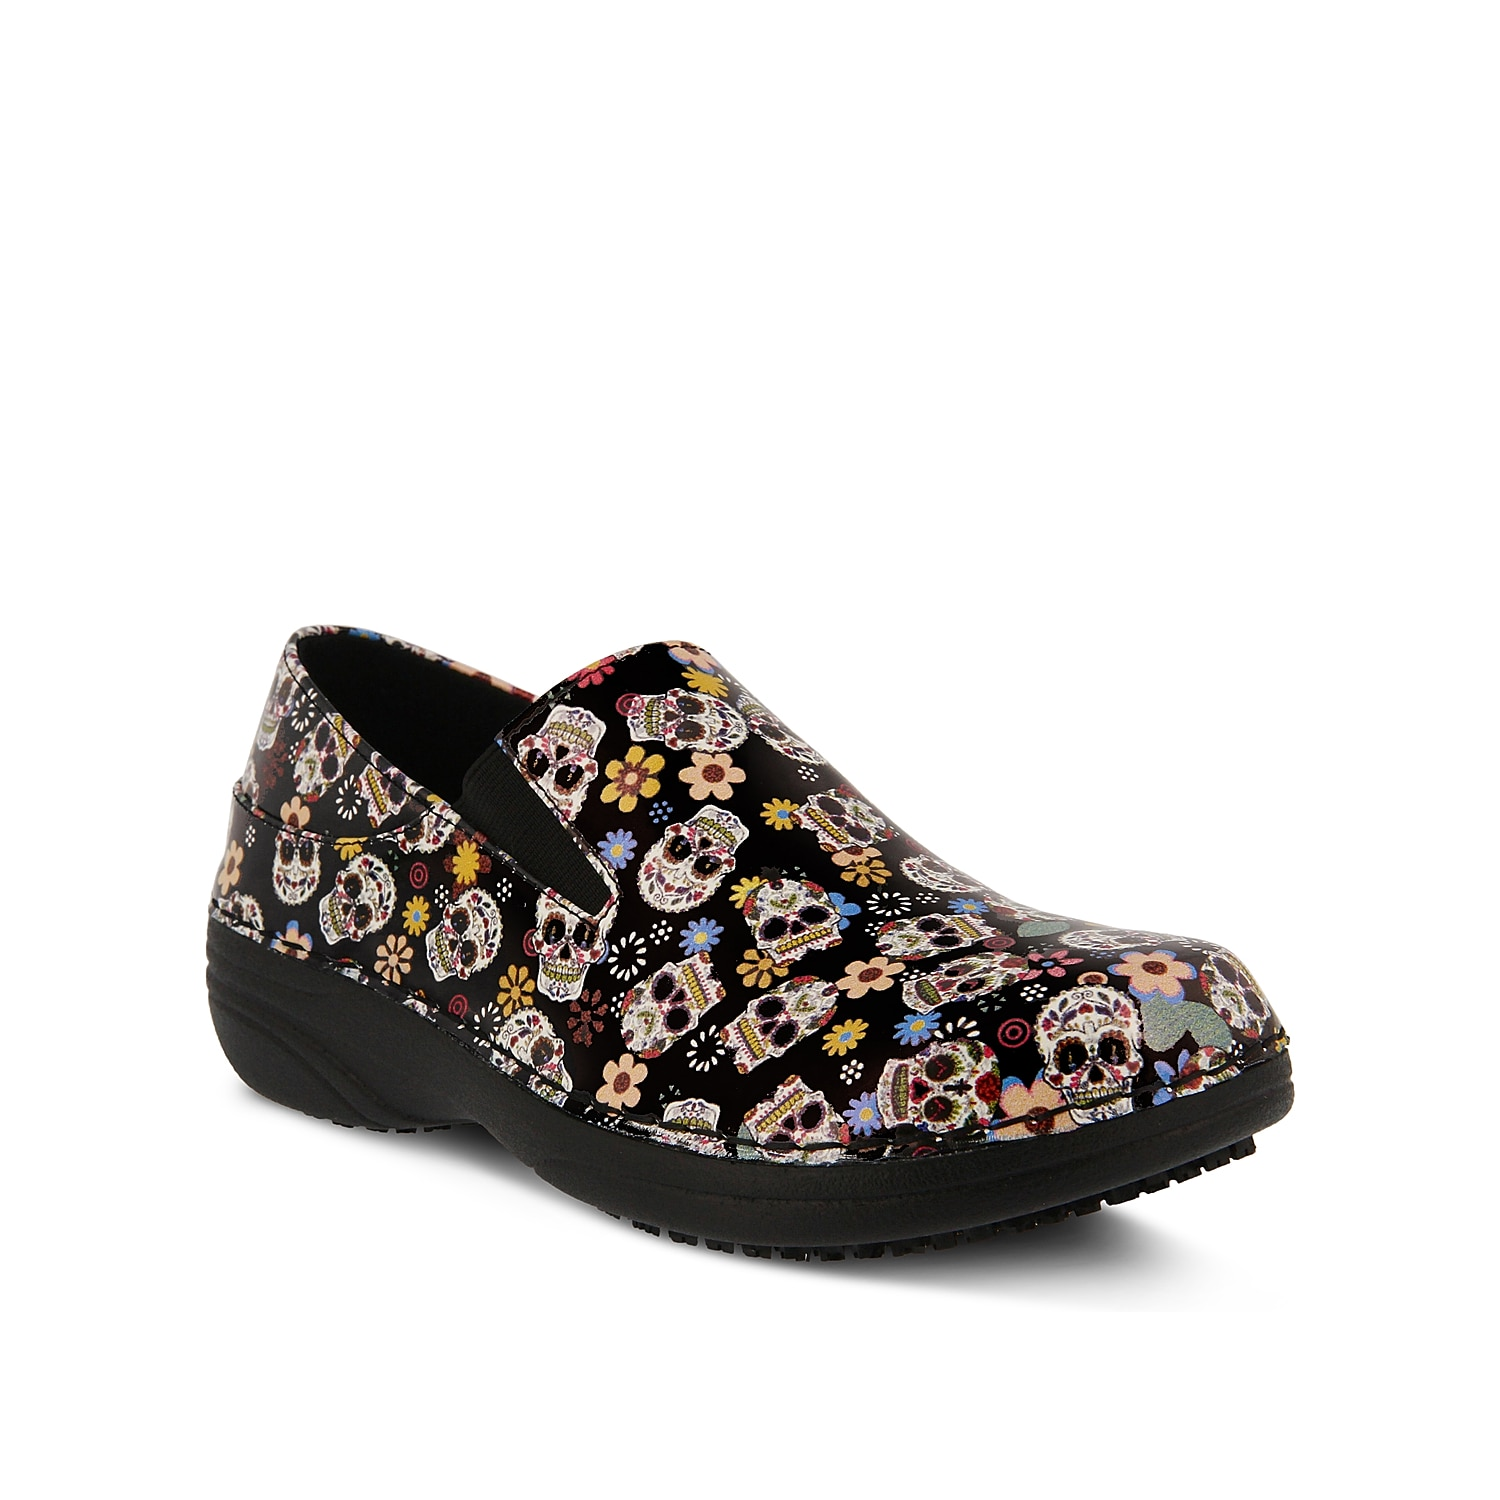 Induce an offbeat element to your ensemble with this Ferrara clog from Spring Step. Colorful and quirky, this slip-on is accentuated with striking sugar skull graphics and has side stretch elastic inserts for a secure fit.